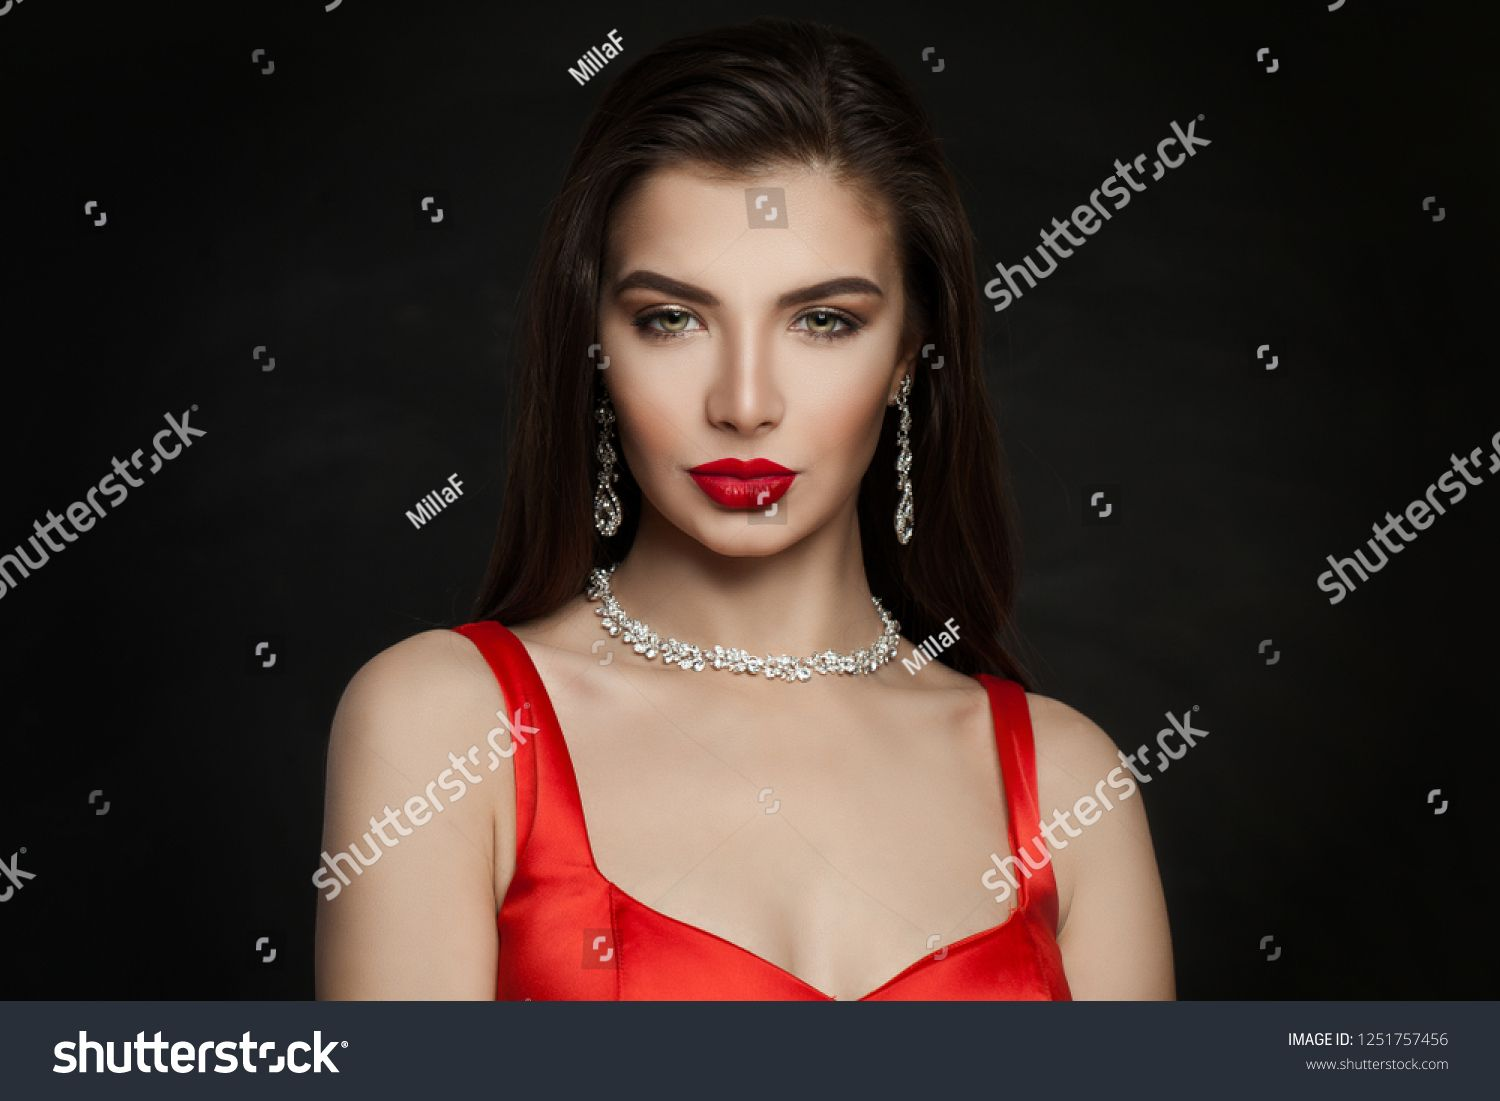 Gorgeous Woman Brunette With Red Lips Makeup Diamond Necklace And